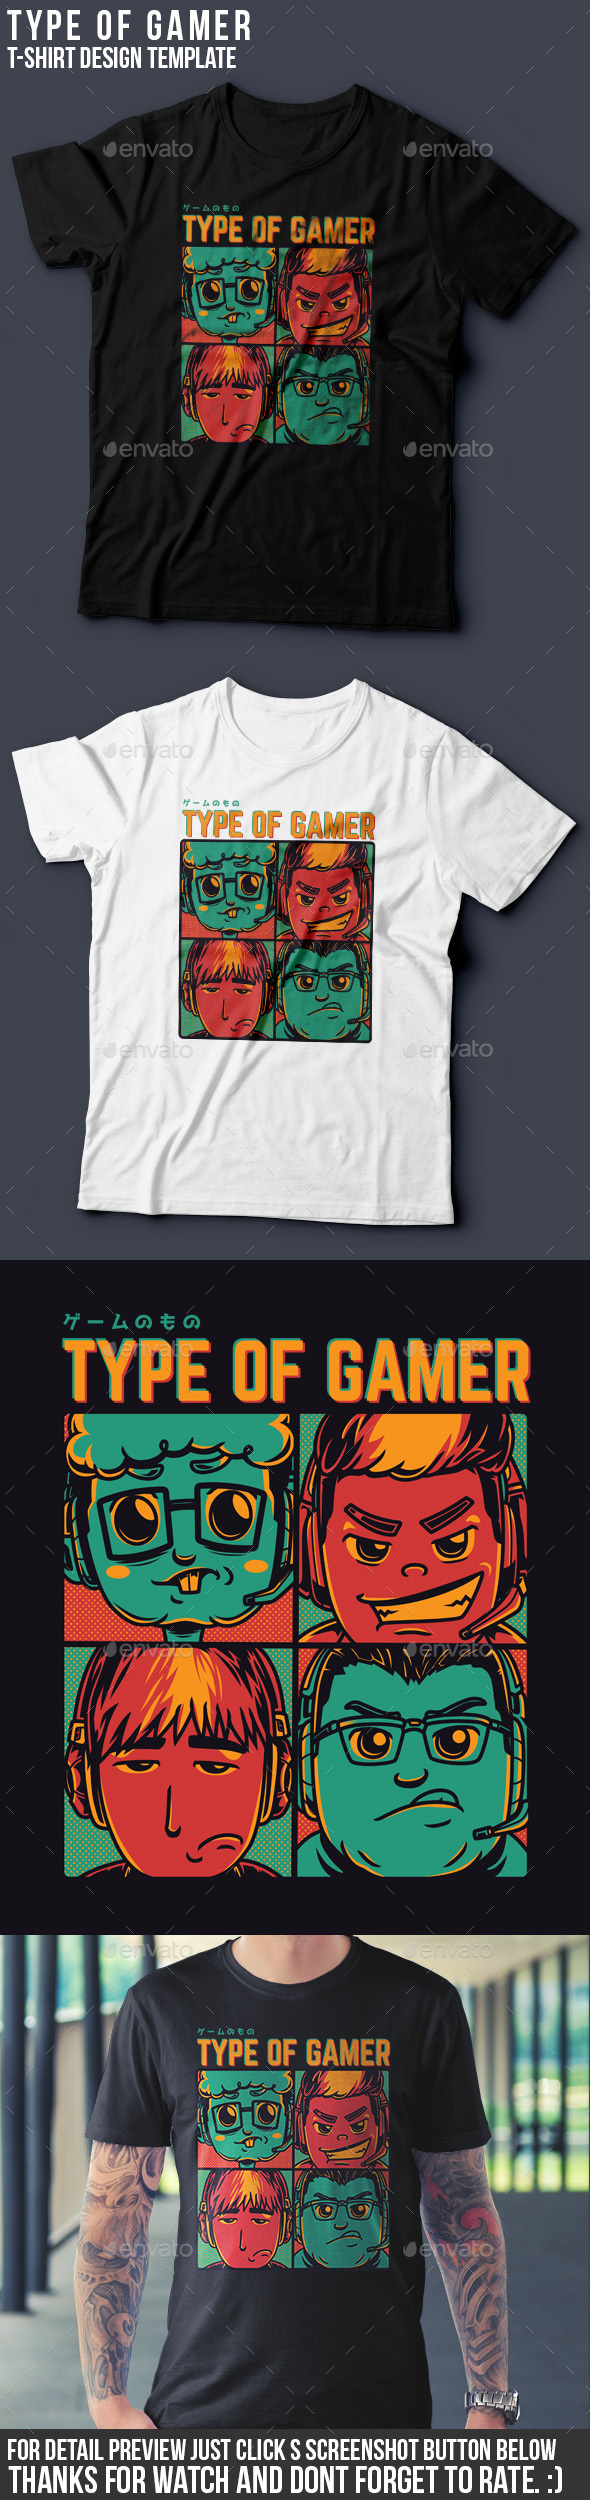 Type of Gamer T-Shirt Design - Academic T-Shirts